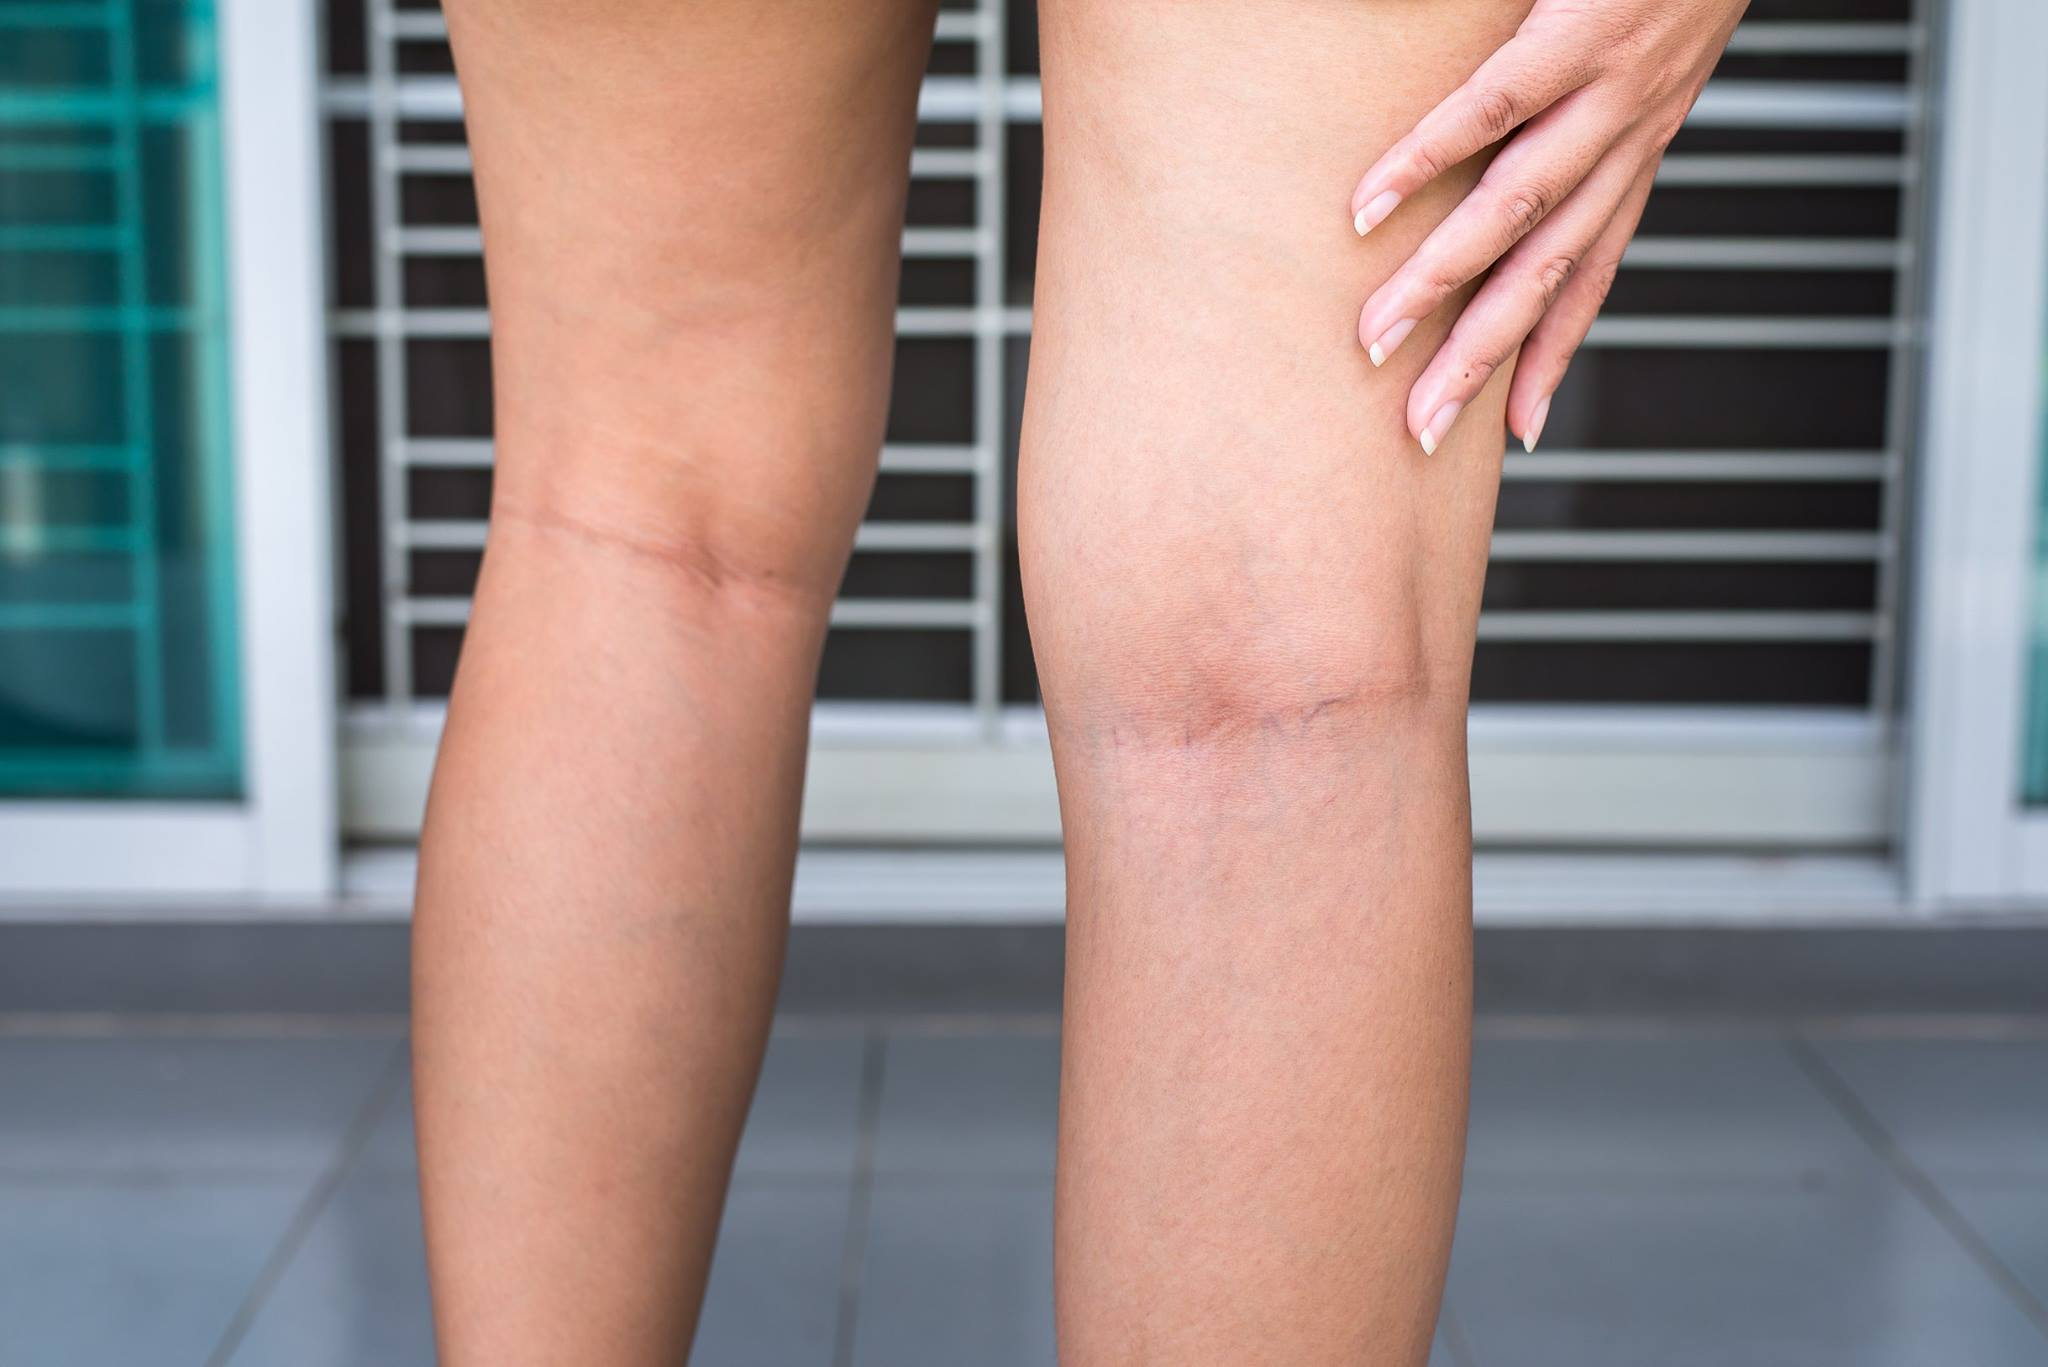 Leg Swelling – Your Veins Could Be the Cause